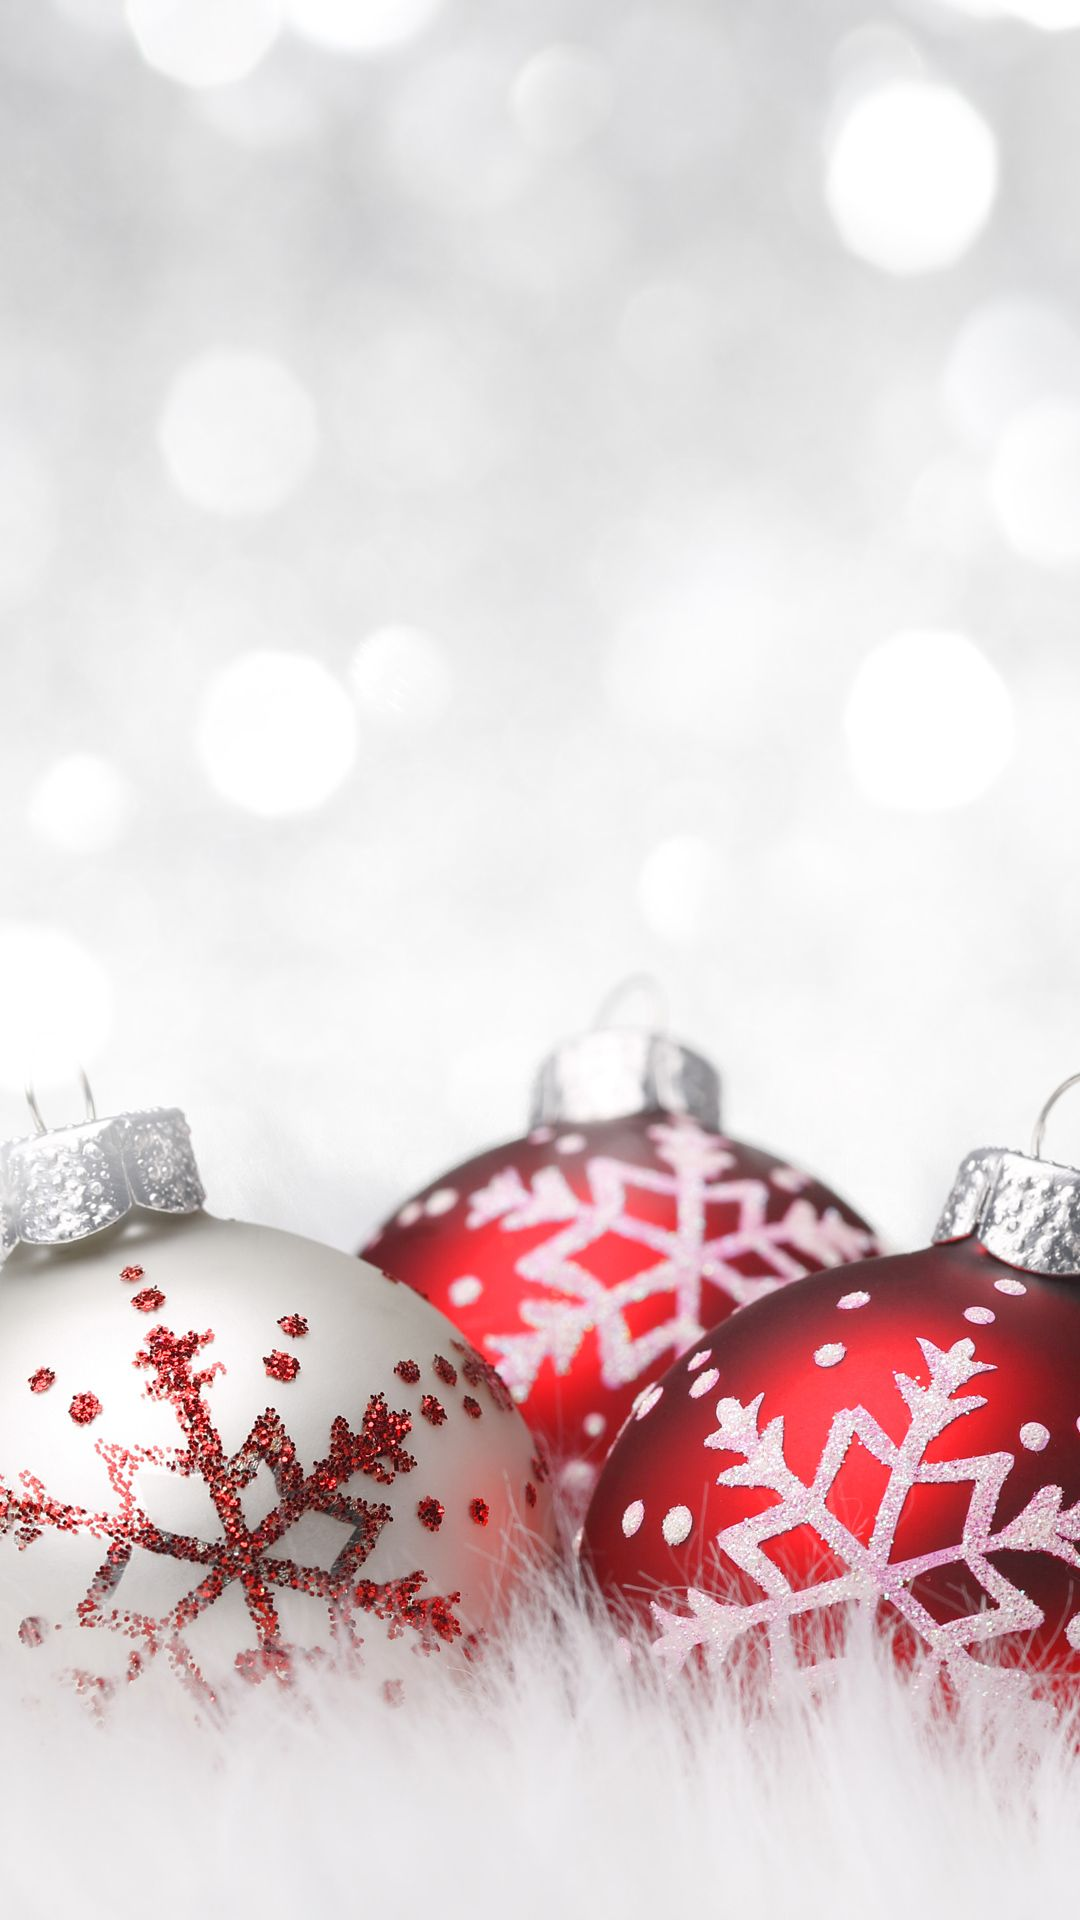 Red And White Christmas Wallpapers Desktop Background